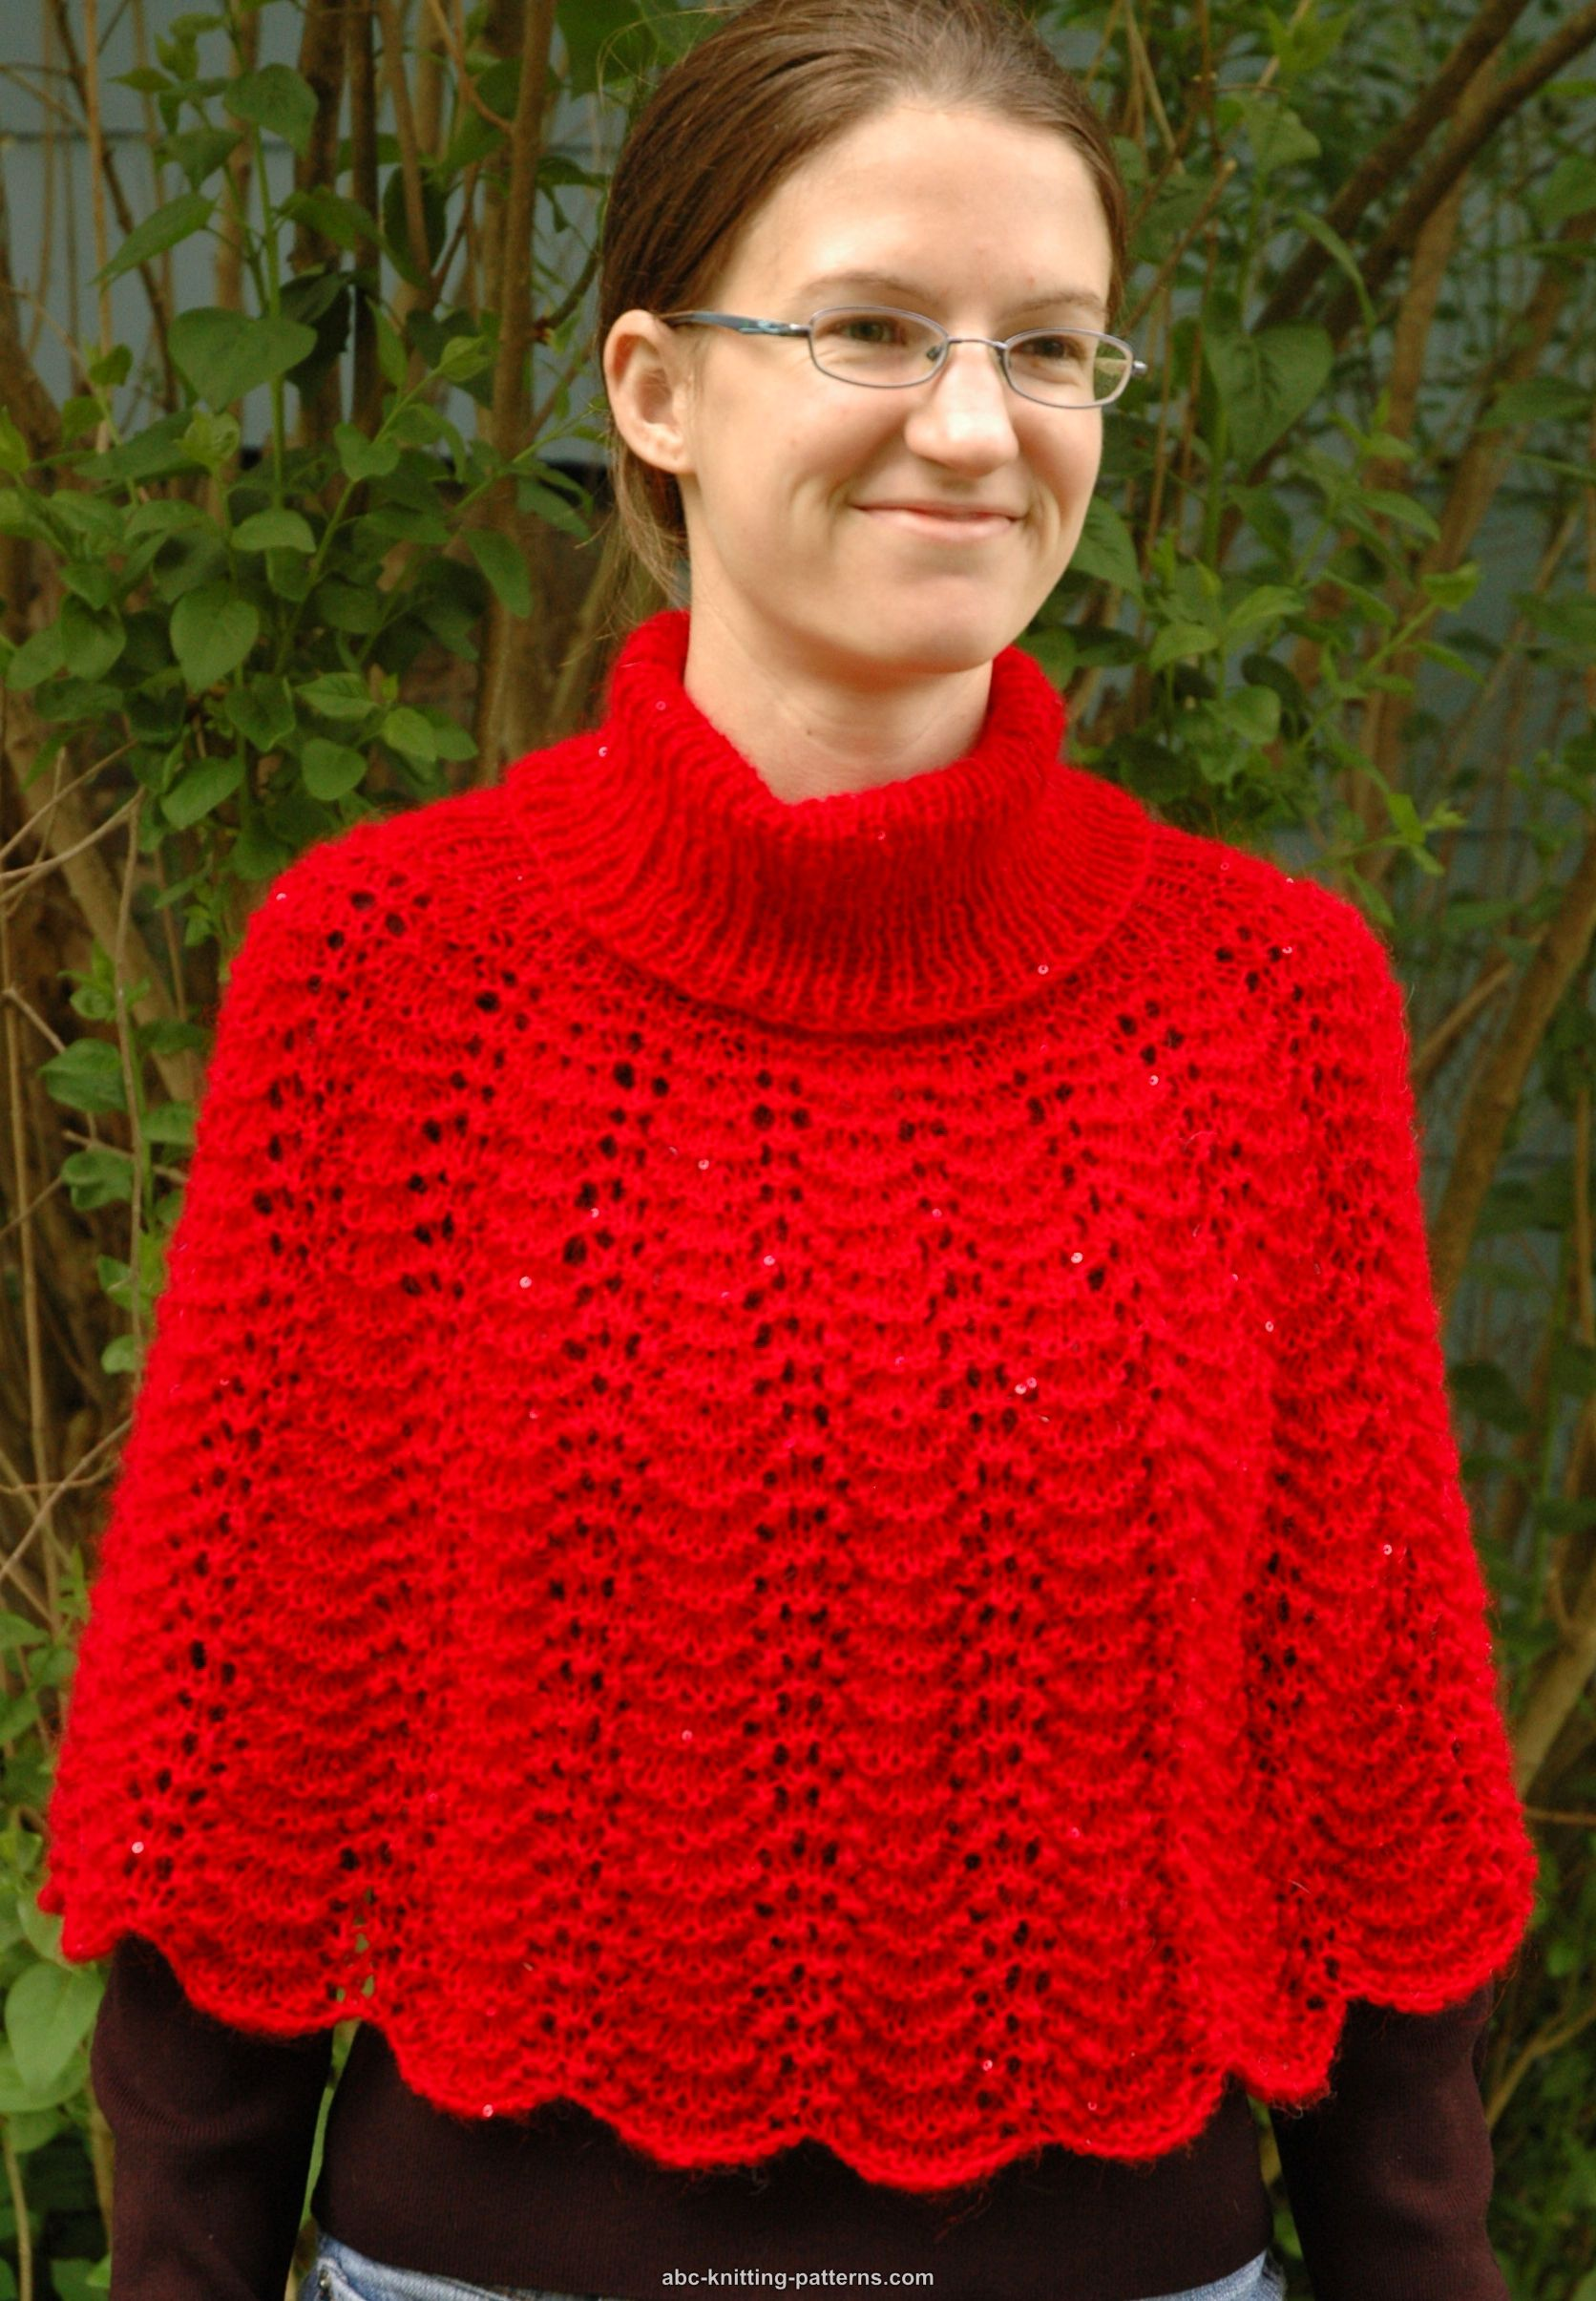 Free Capelet Knitting Patterns : Knitting Patterns Galore - Little Red Riding Capelet